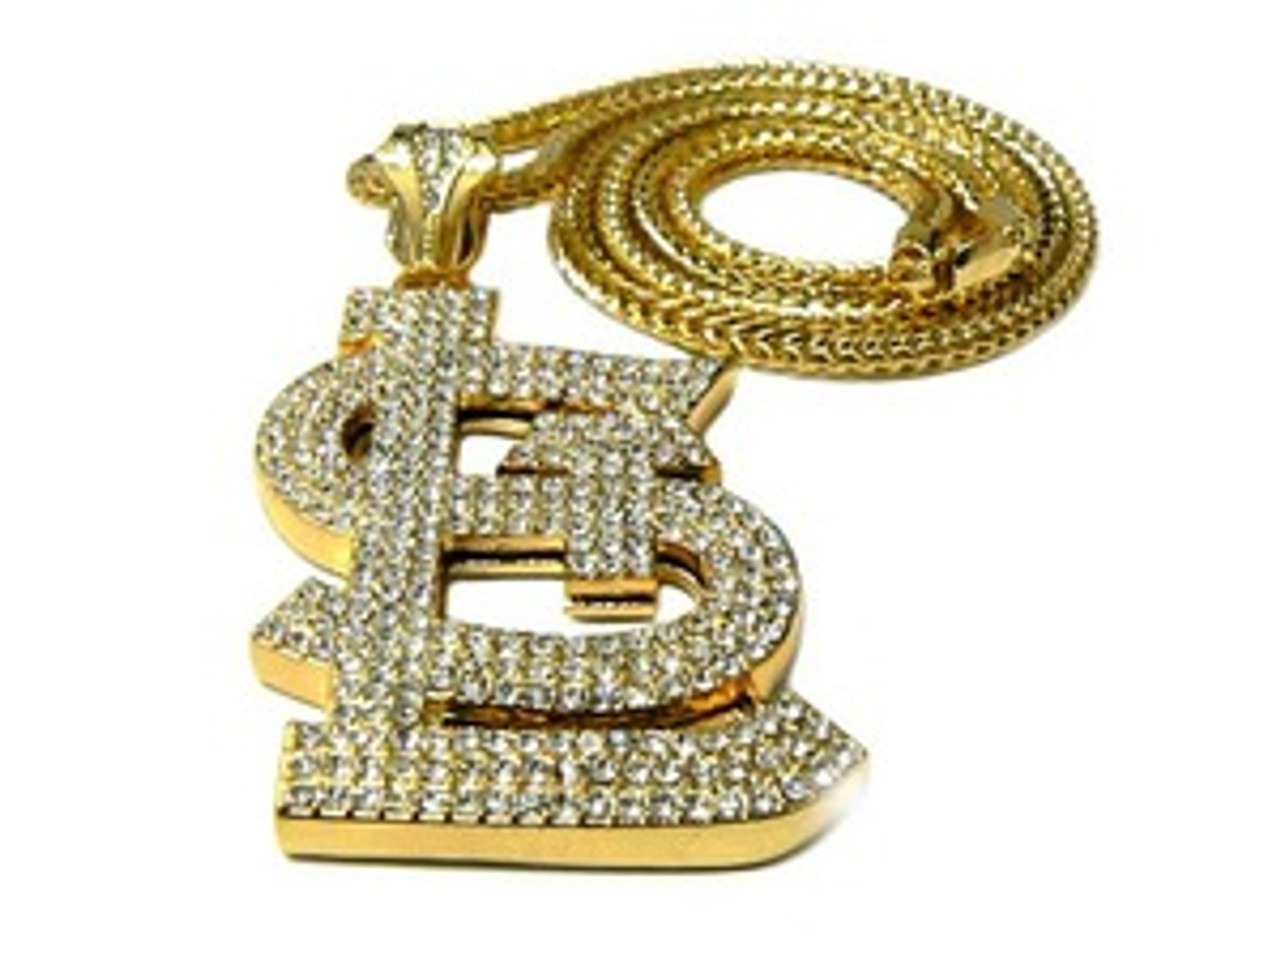 Fully iced out stlouis gold hip hop pendant wfree 36 gold chain fully iced out stlouis gold hip hop pendant wfree 36 mozeypictures Gallery